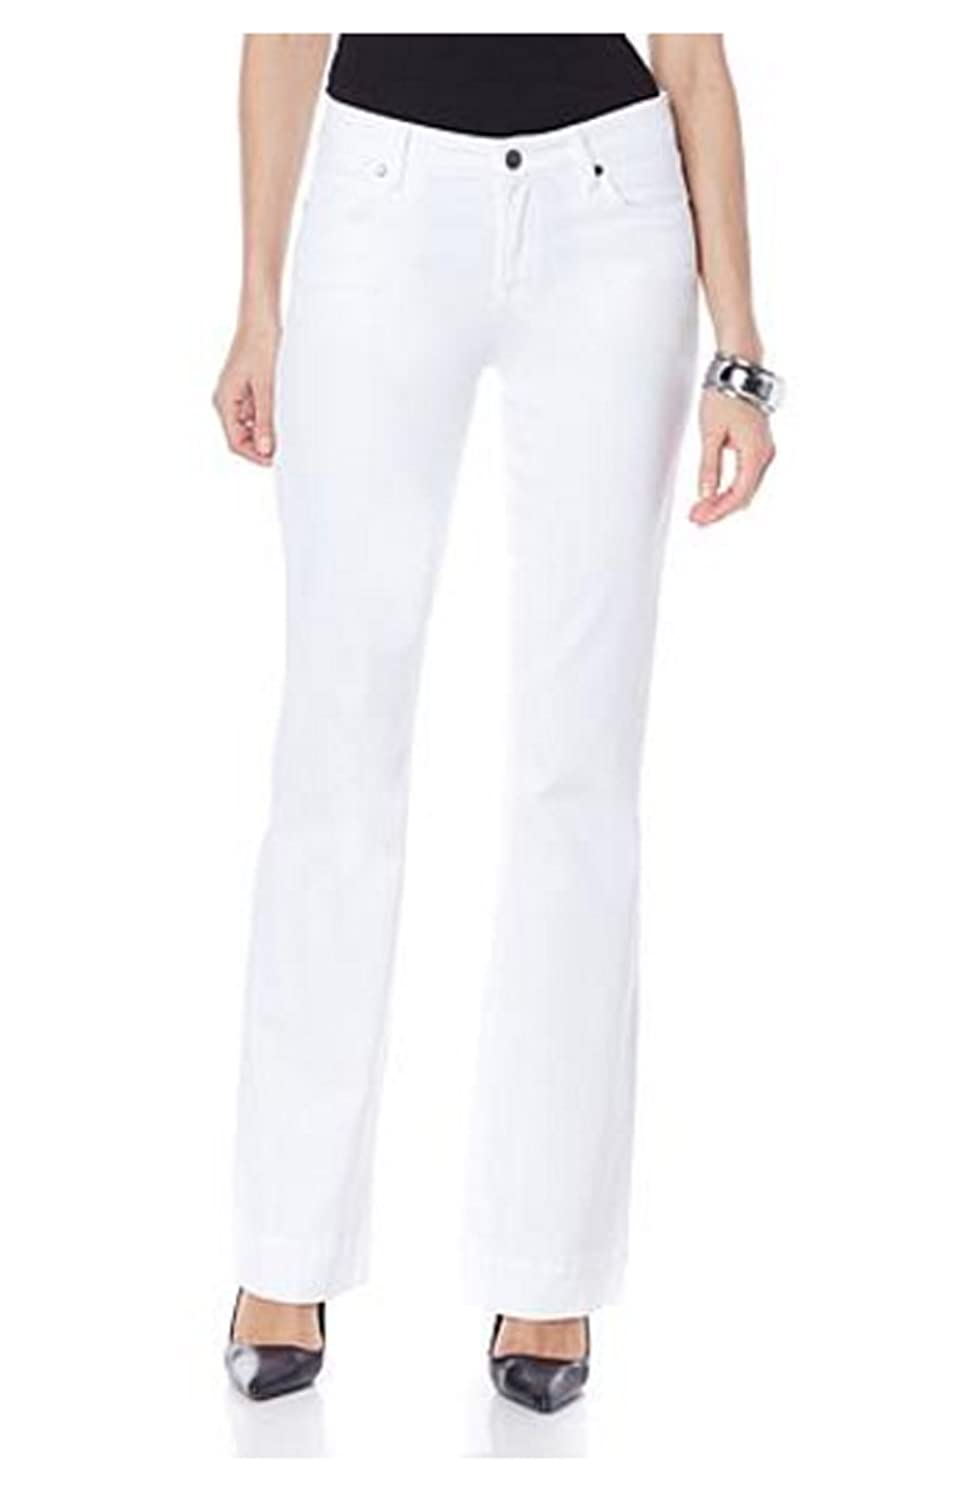 CJ by Cookie Johnson Women's Worthy Flare Jean Optic White (34)